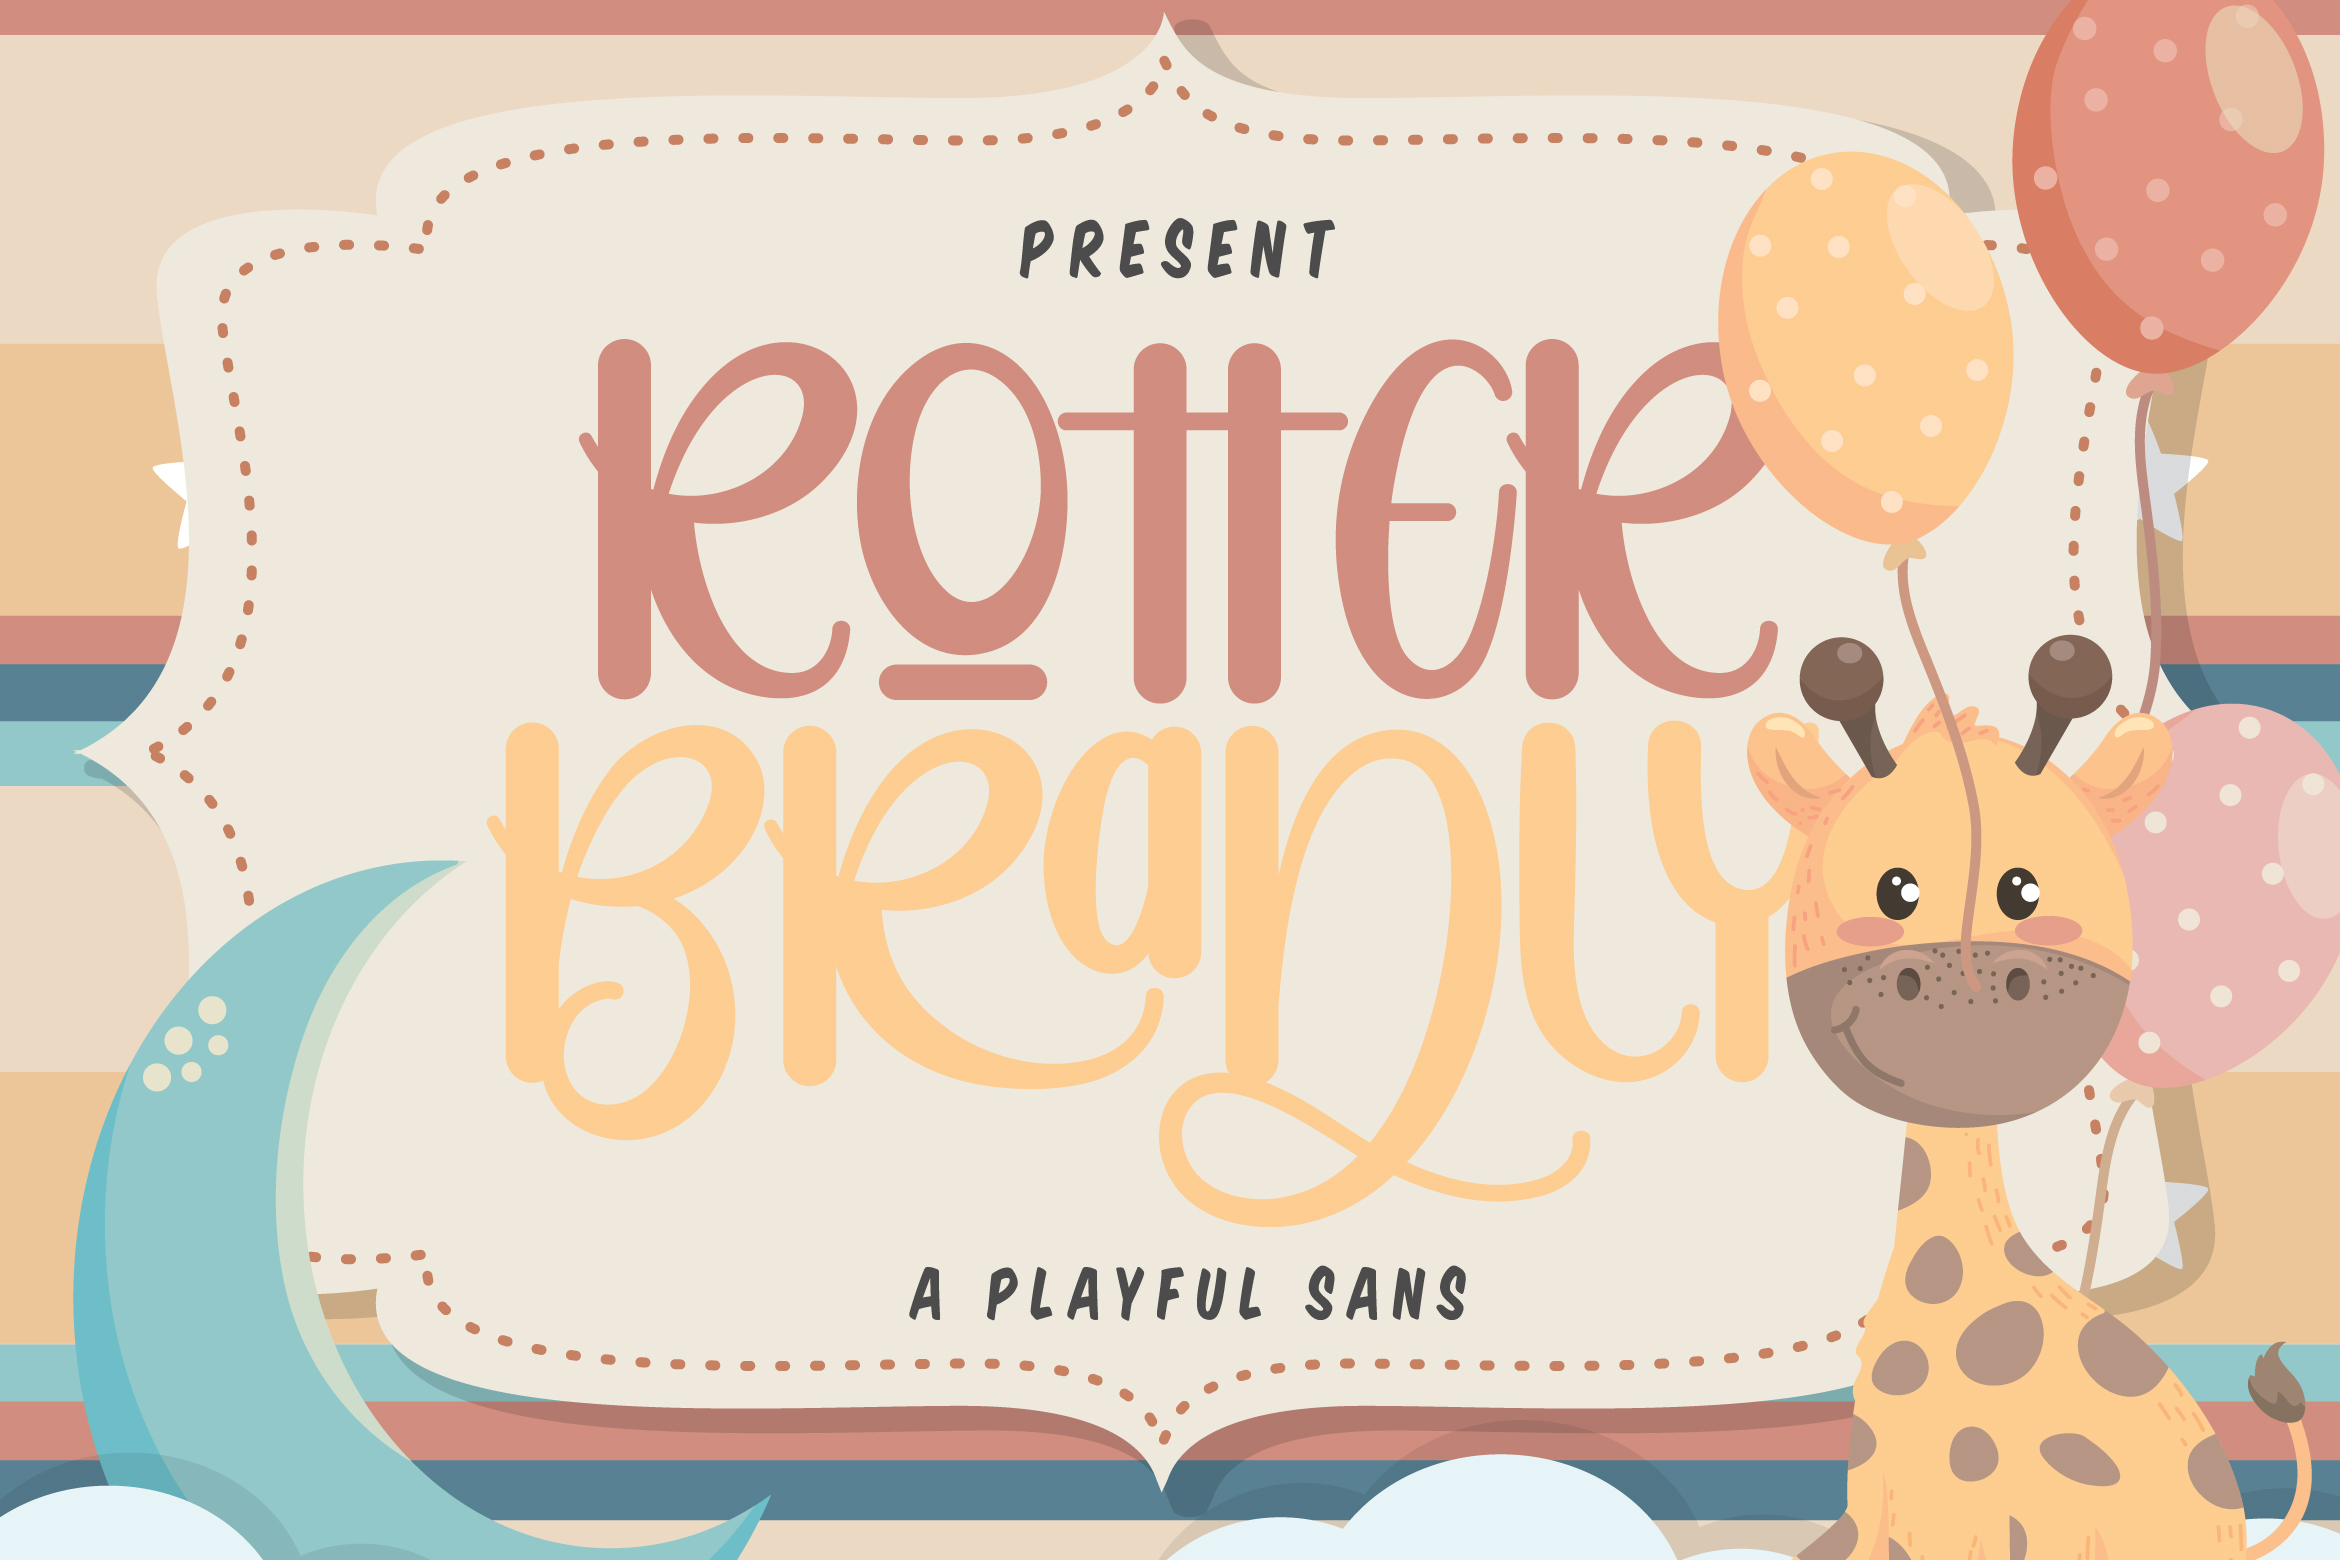 Rotter Bradly | A Playful Sans example image 1